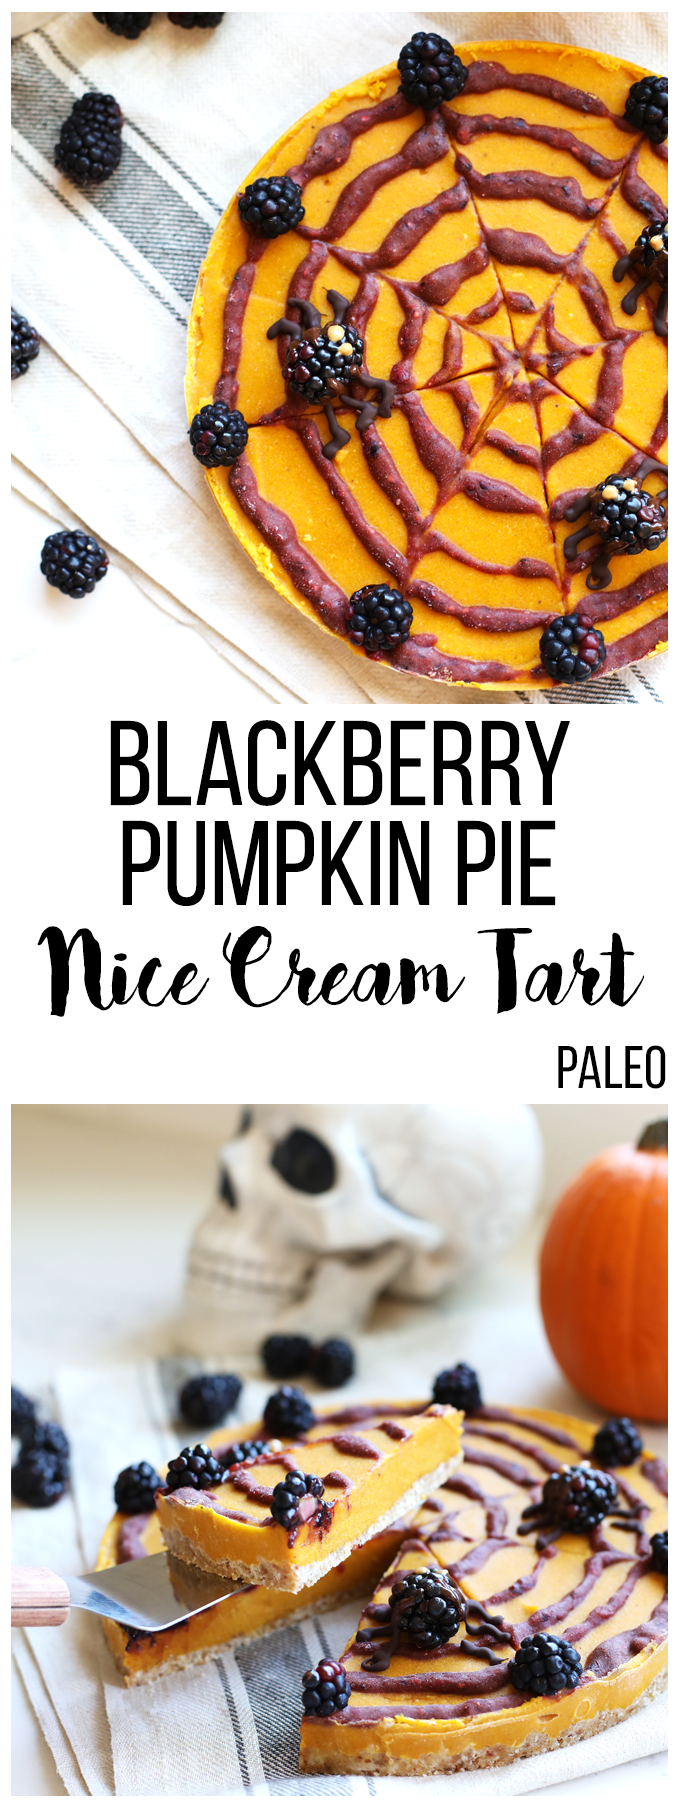 This Blackberry Pumpkin Pie Nice Cream Tart is a perfect way to use up your berries and get into the holiday spirit! Using California Giant Berry blackberries! #ad